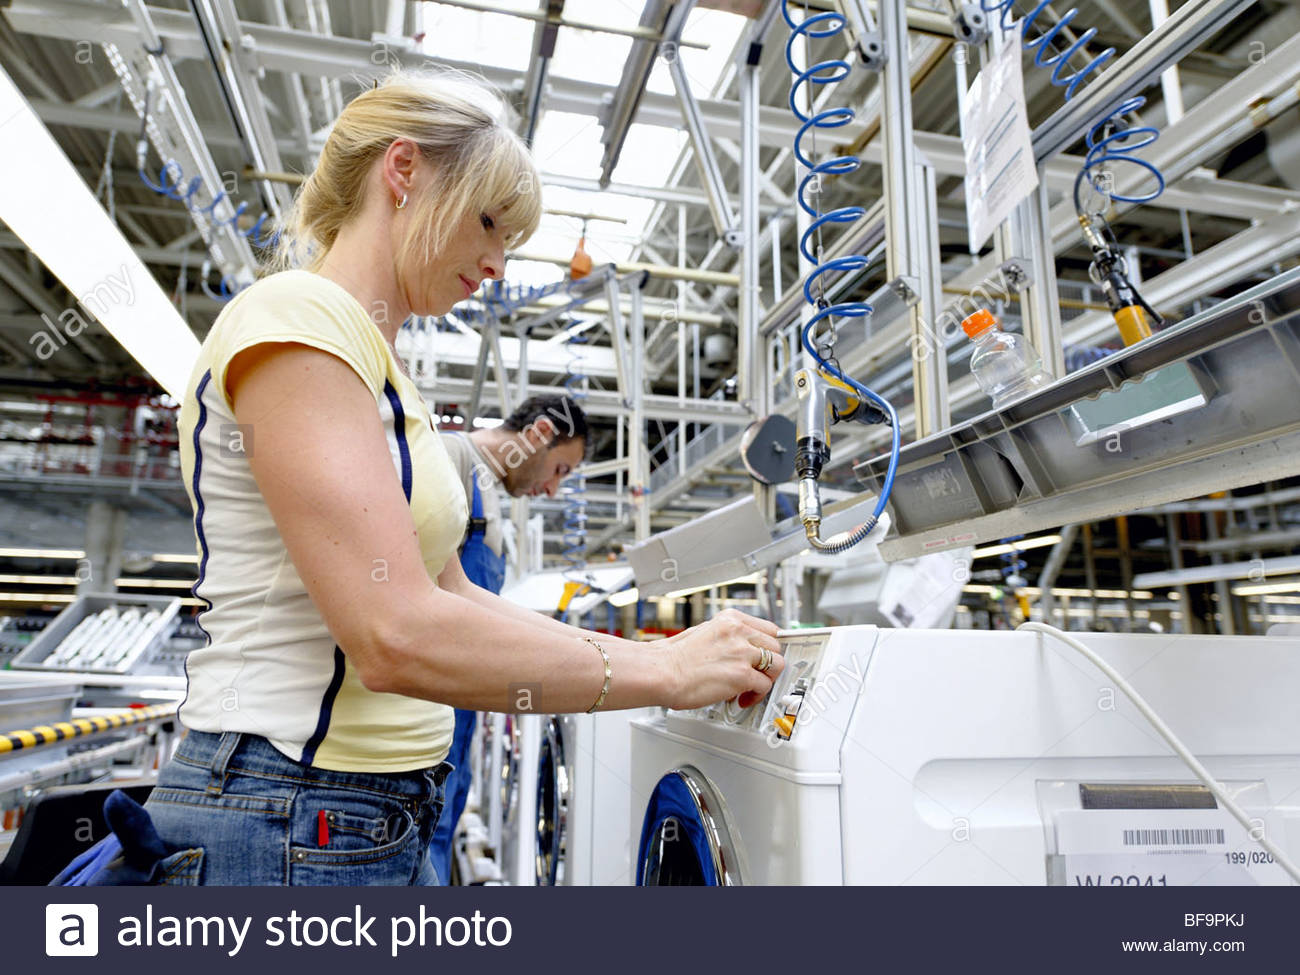 deu germany production of washing machines at miele kg in stock photo royalty free image. Black Bedroom Furniture Sets. Home Design Ideas